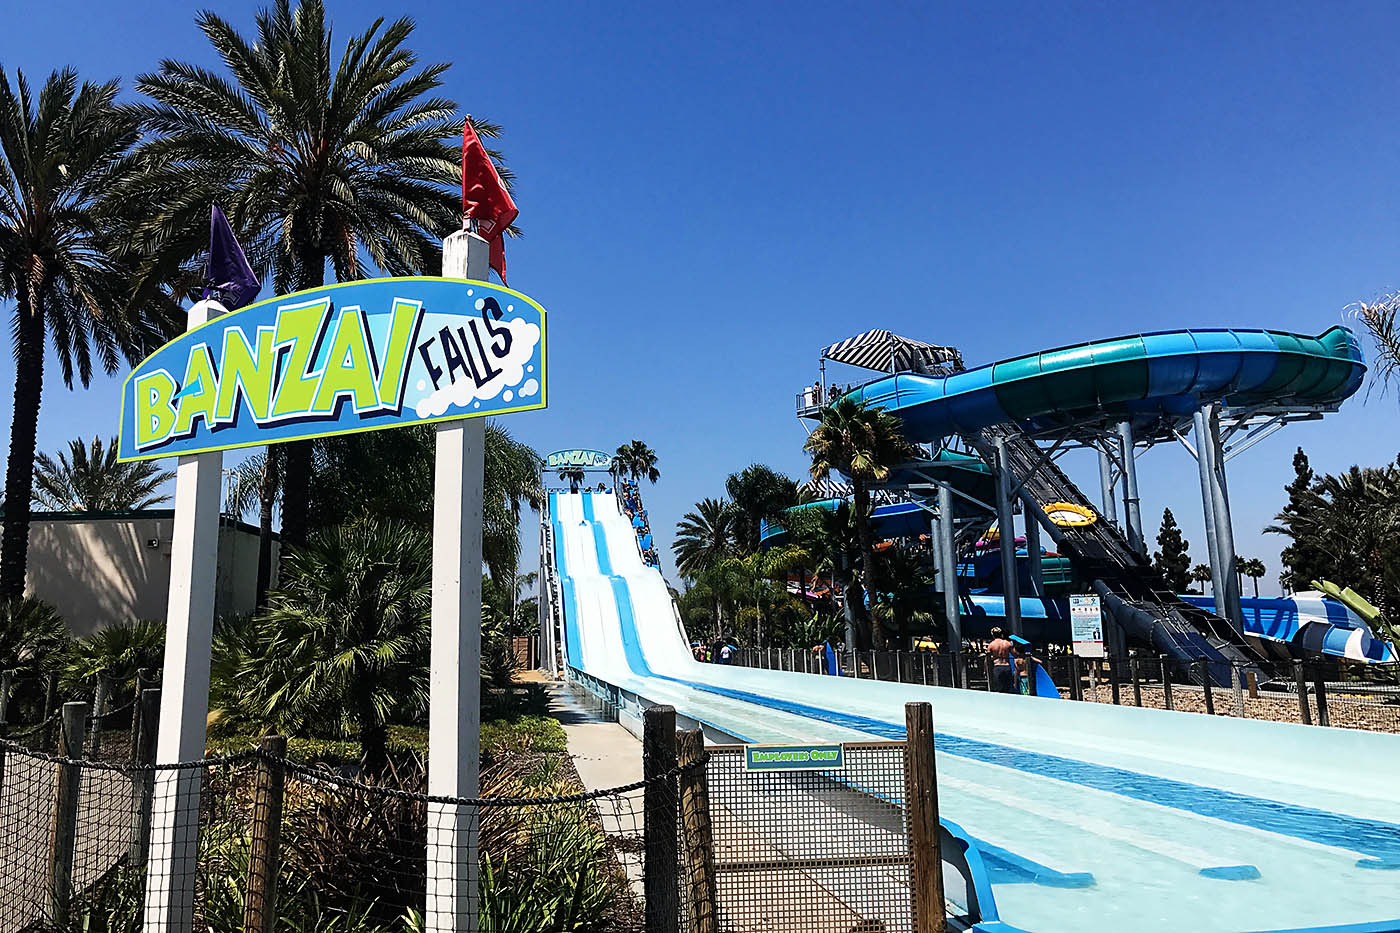 Tips for visiting Knott's Berry Farm AND Soak City in 1 day!